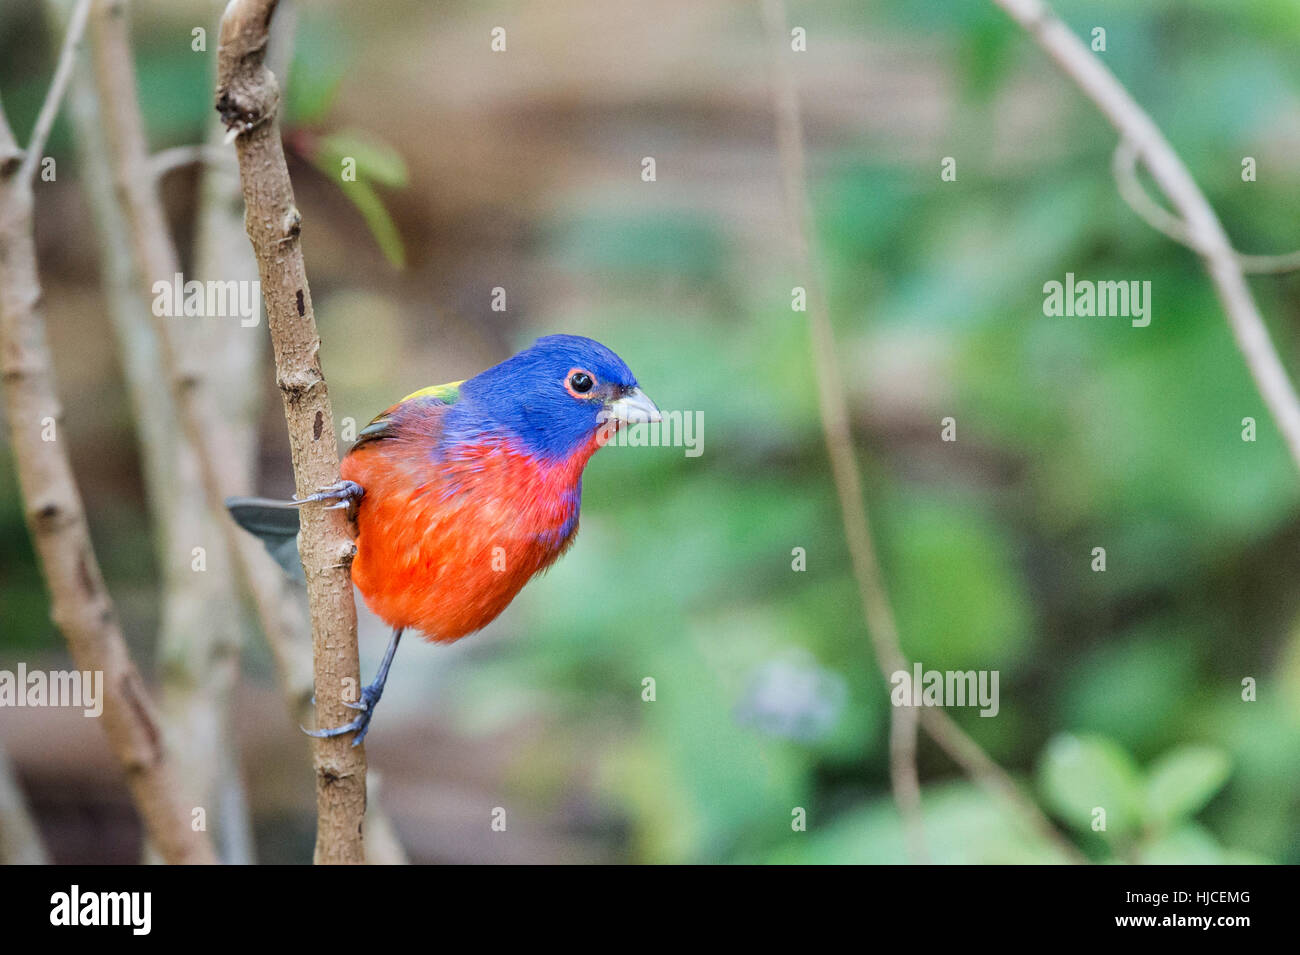 A Painted Bunting hangs onto a small branch showing off its brilliant coloration. - Stock Image